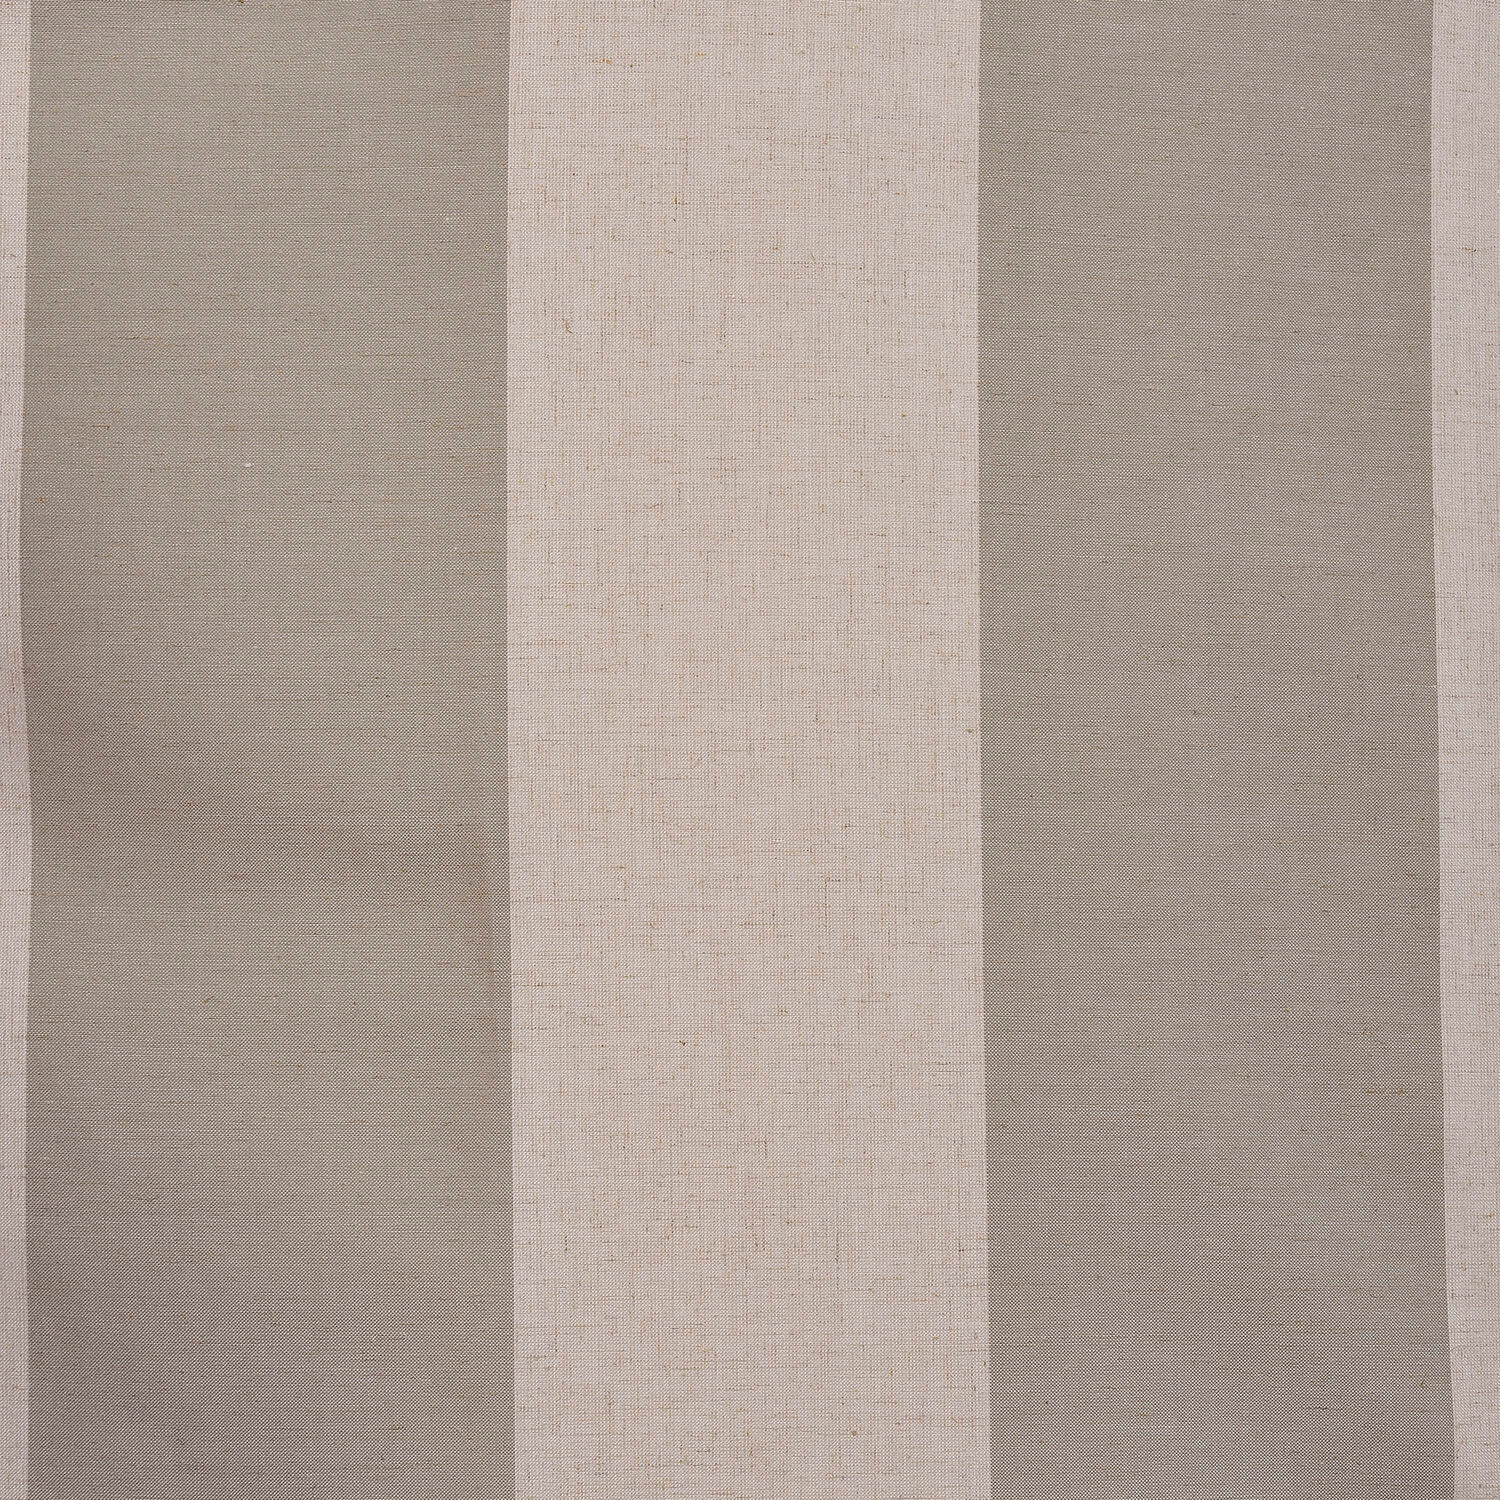 Del Mar Stone Linen Blend Stripe Swatch